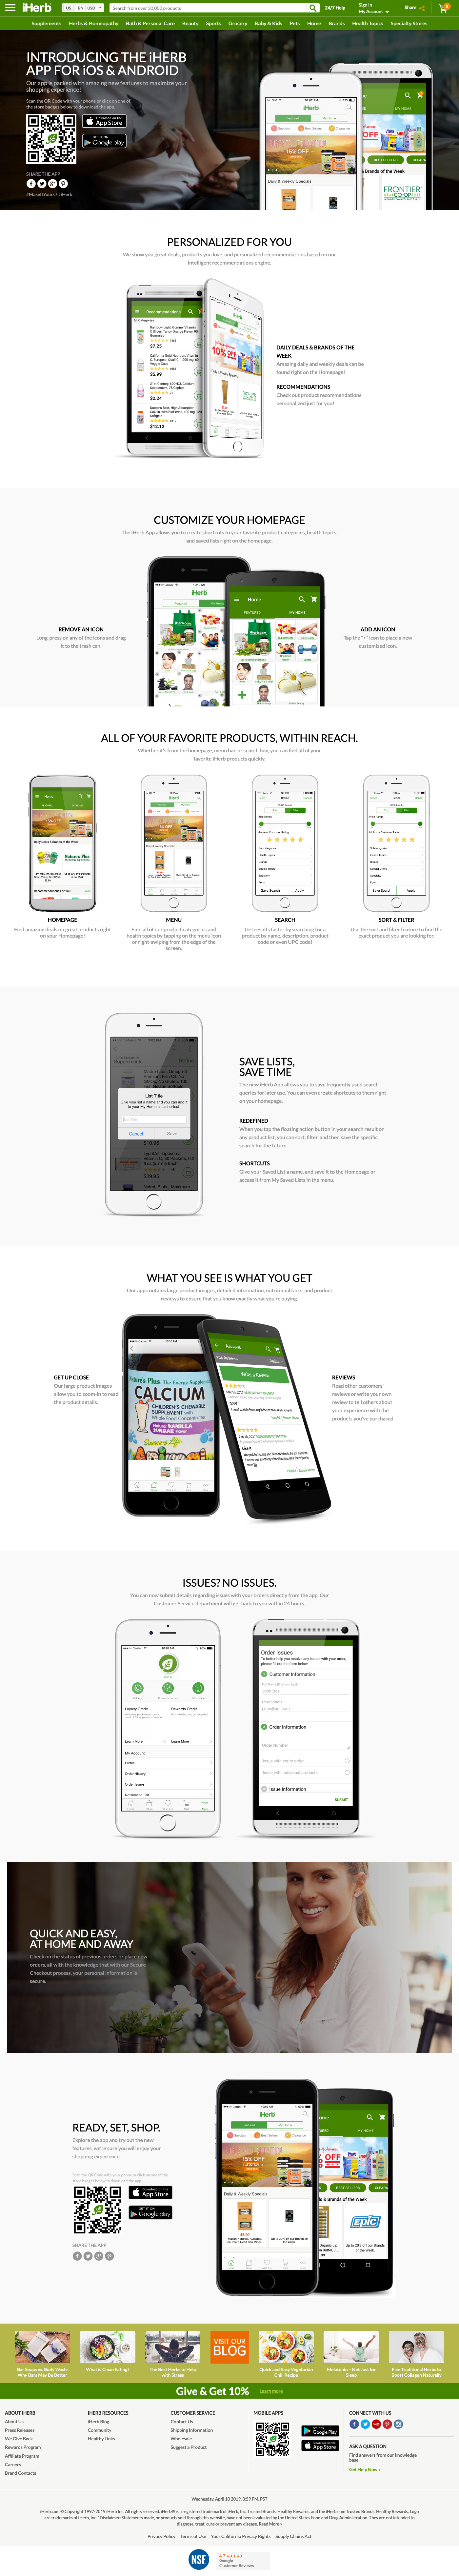 iHerb - Native Apps - Landing Page